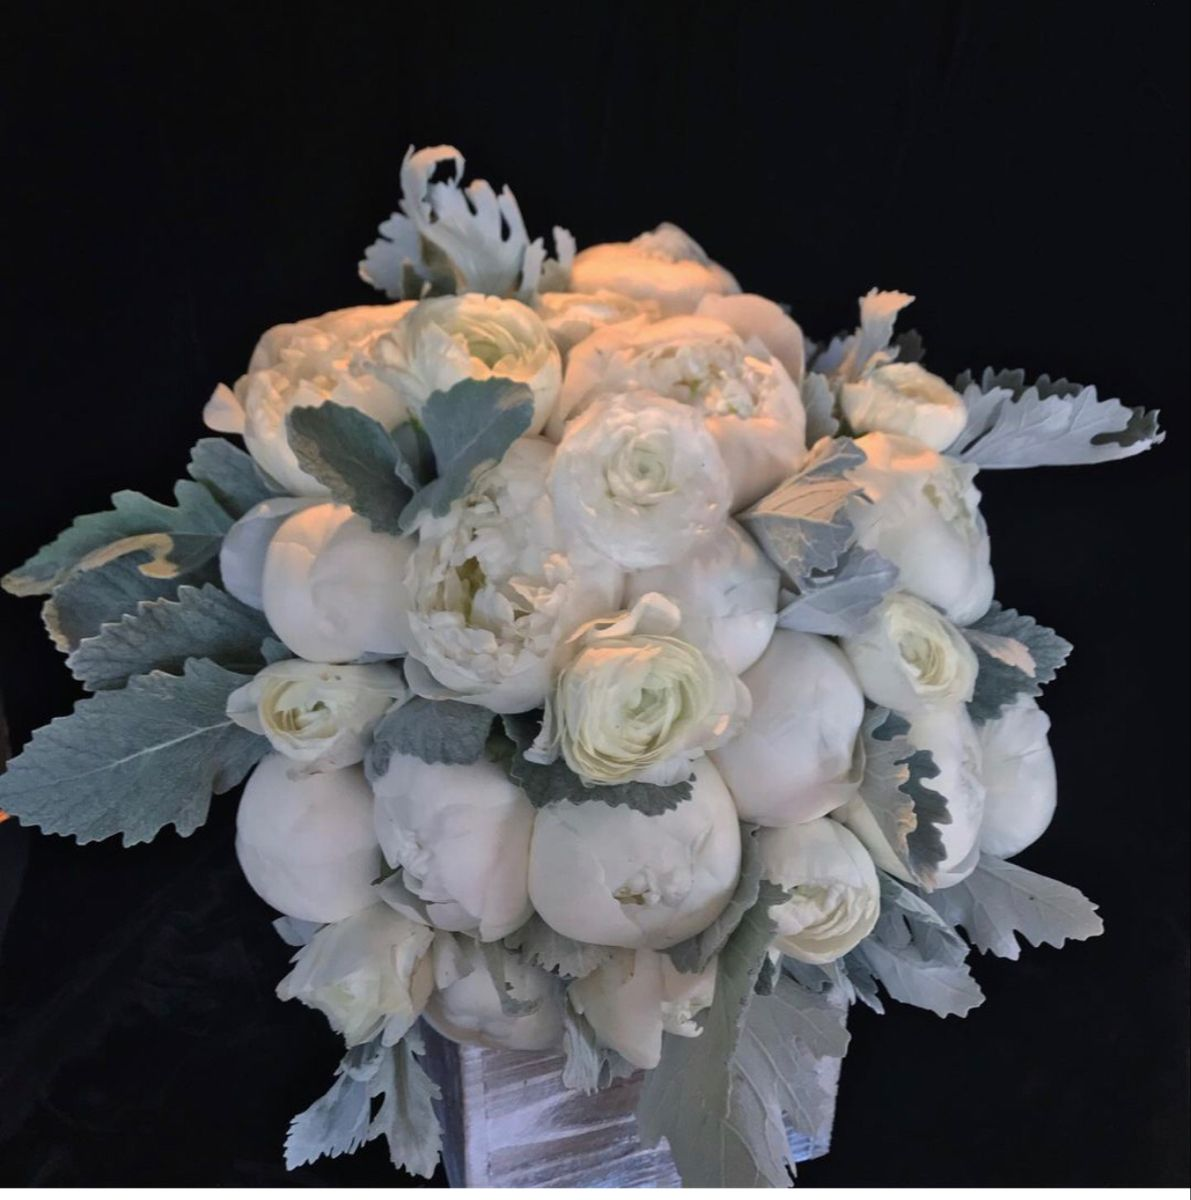 Bridal Bouquets In 2020 Bridal Bouquet Wholesale Flowers Wedding Wedding Flowers